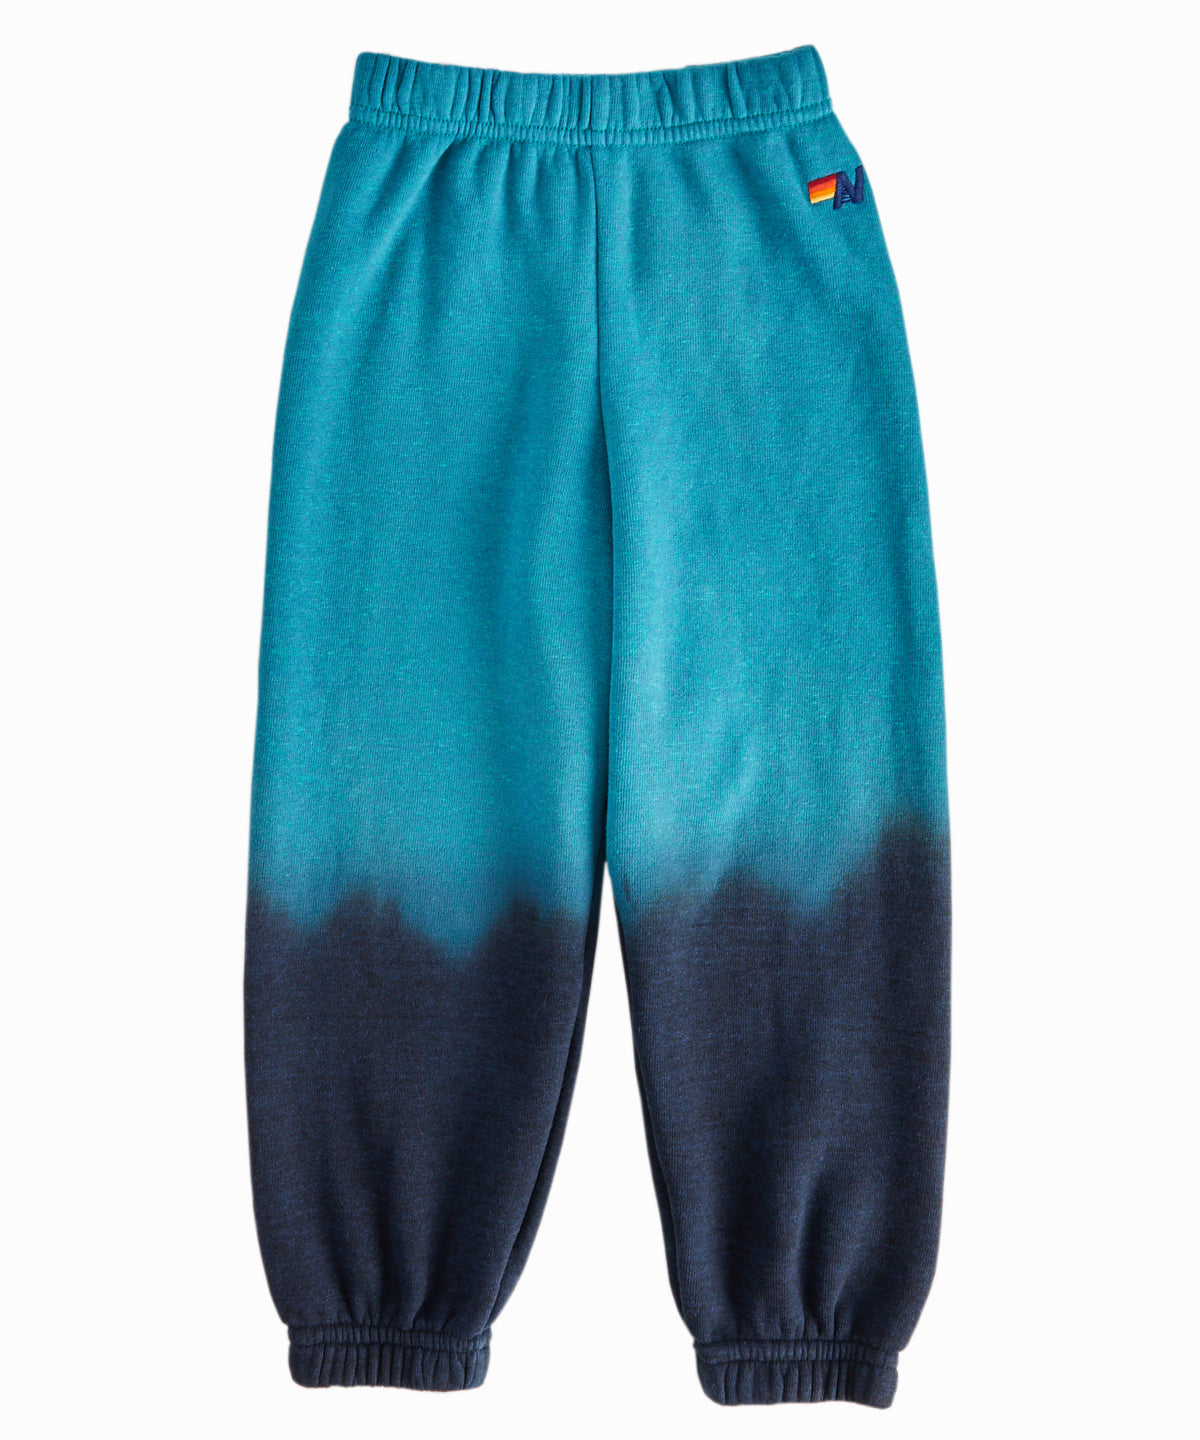 Turquoise Faded Ombre Sweatpants